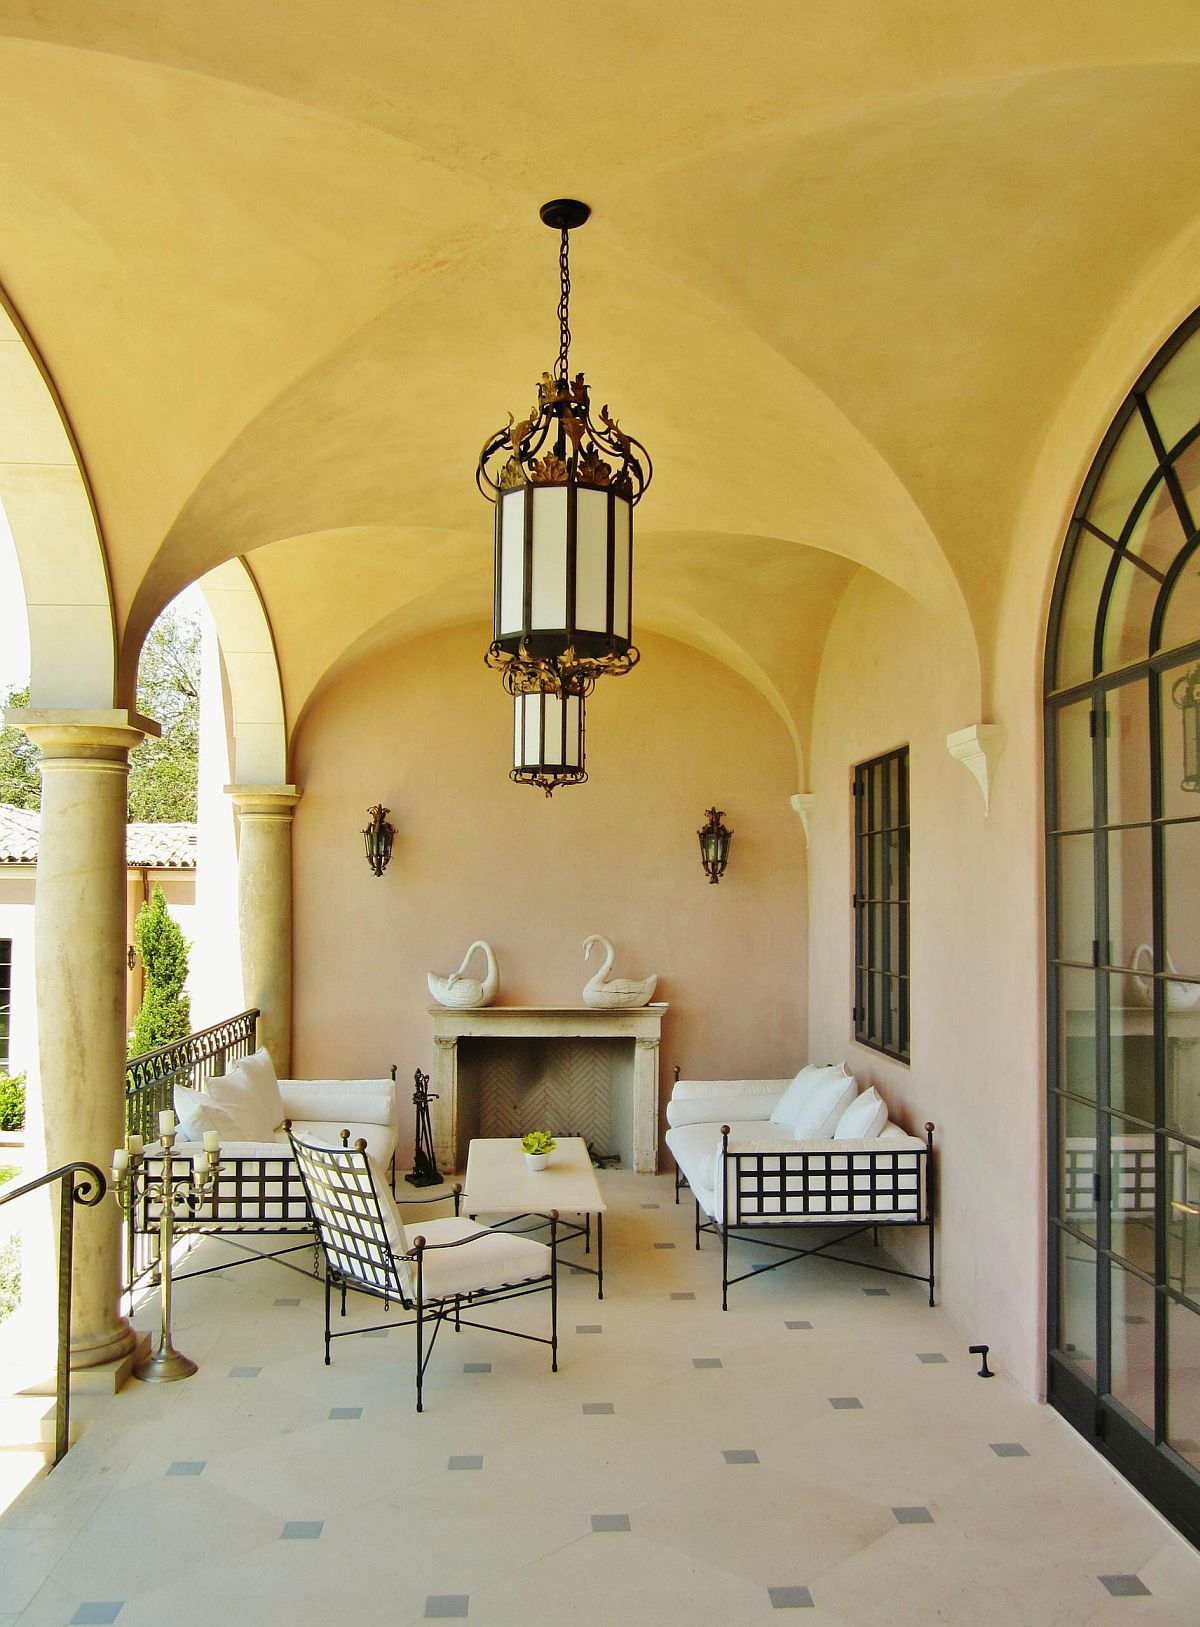 Arches, plastered walls and a warm yellow glow bring unmistakable Mediterranean vibe to this porch